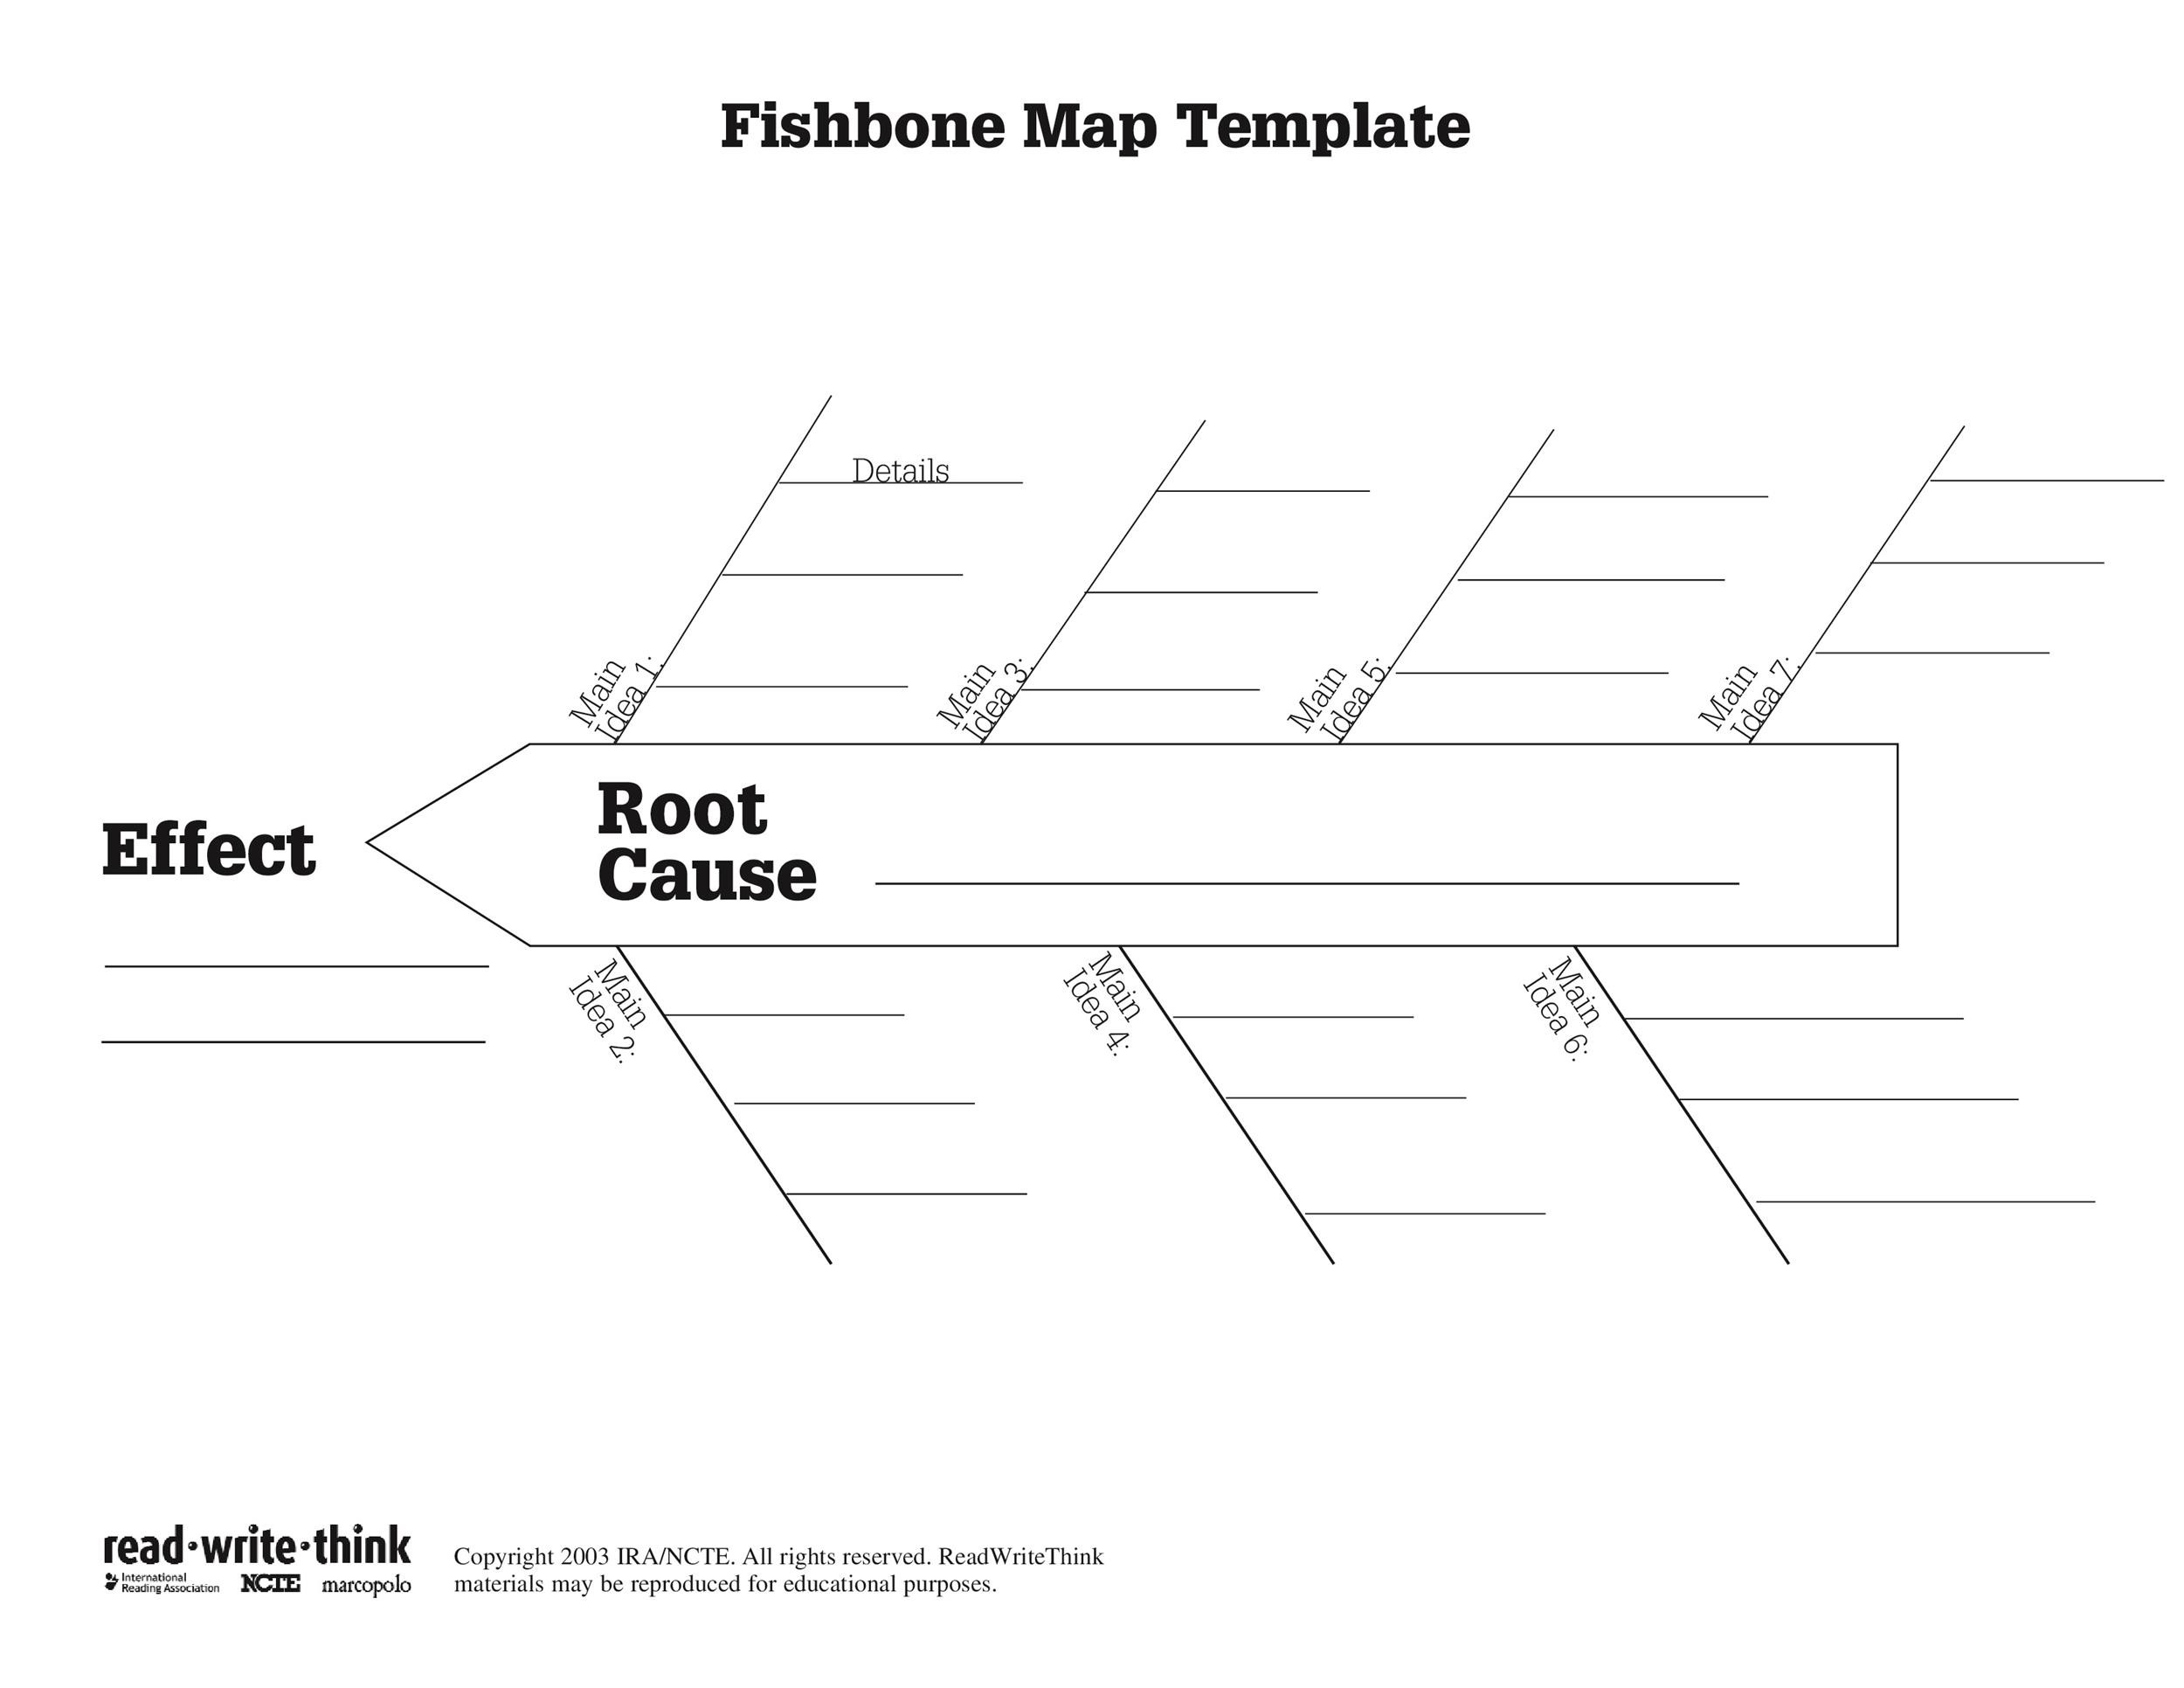 43 Great Fishbone Diagram Templates  Examples Word, Excel